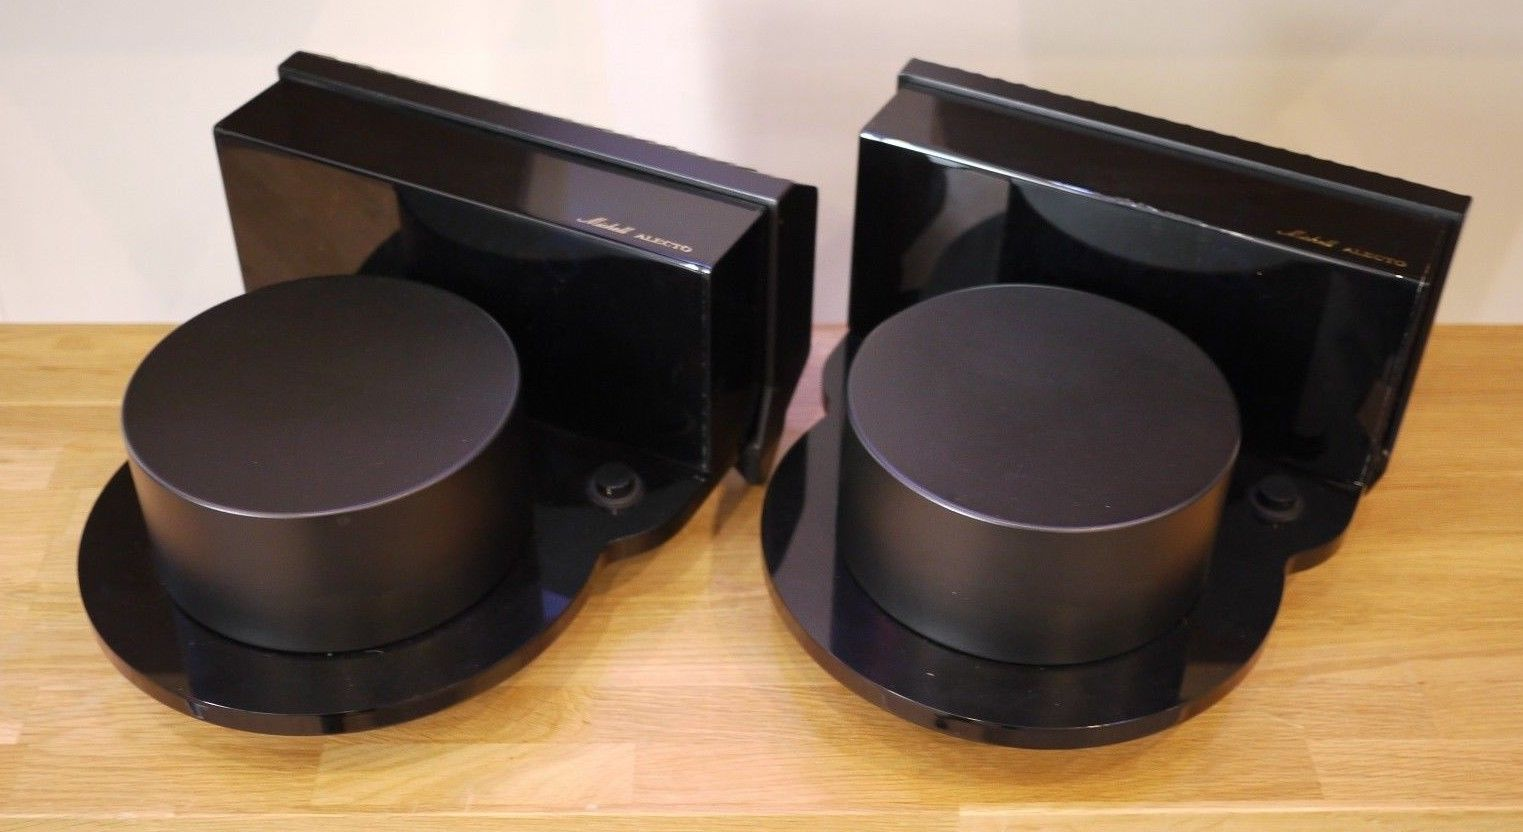 Picture of Michell Alecto MKII Mono Power Amplifiers